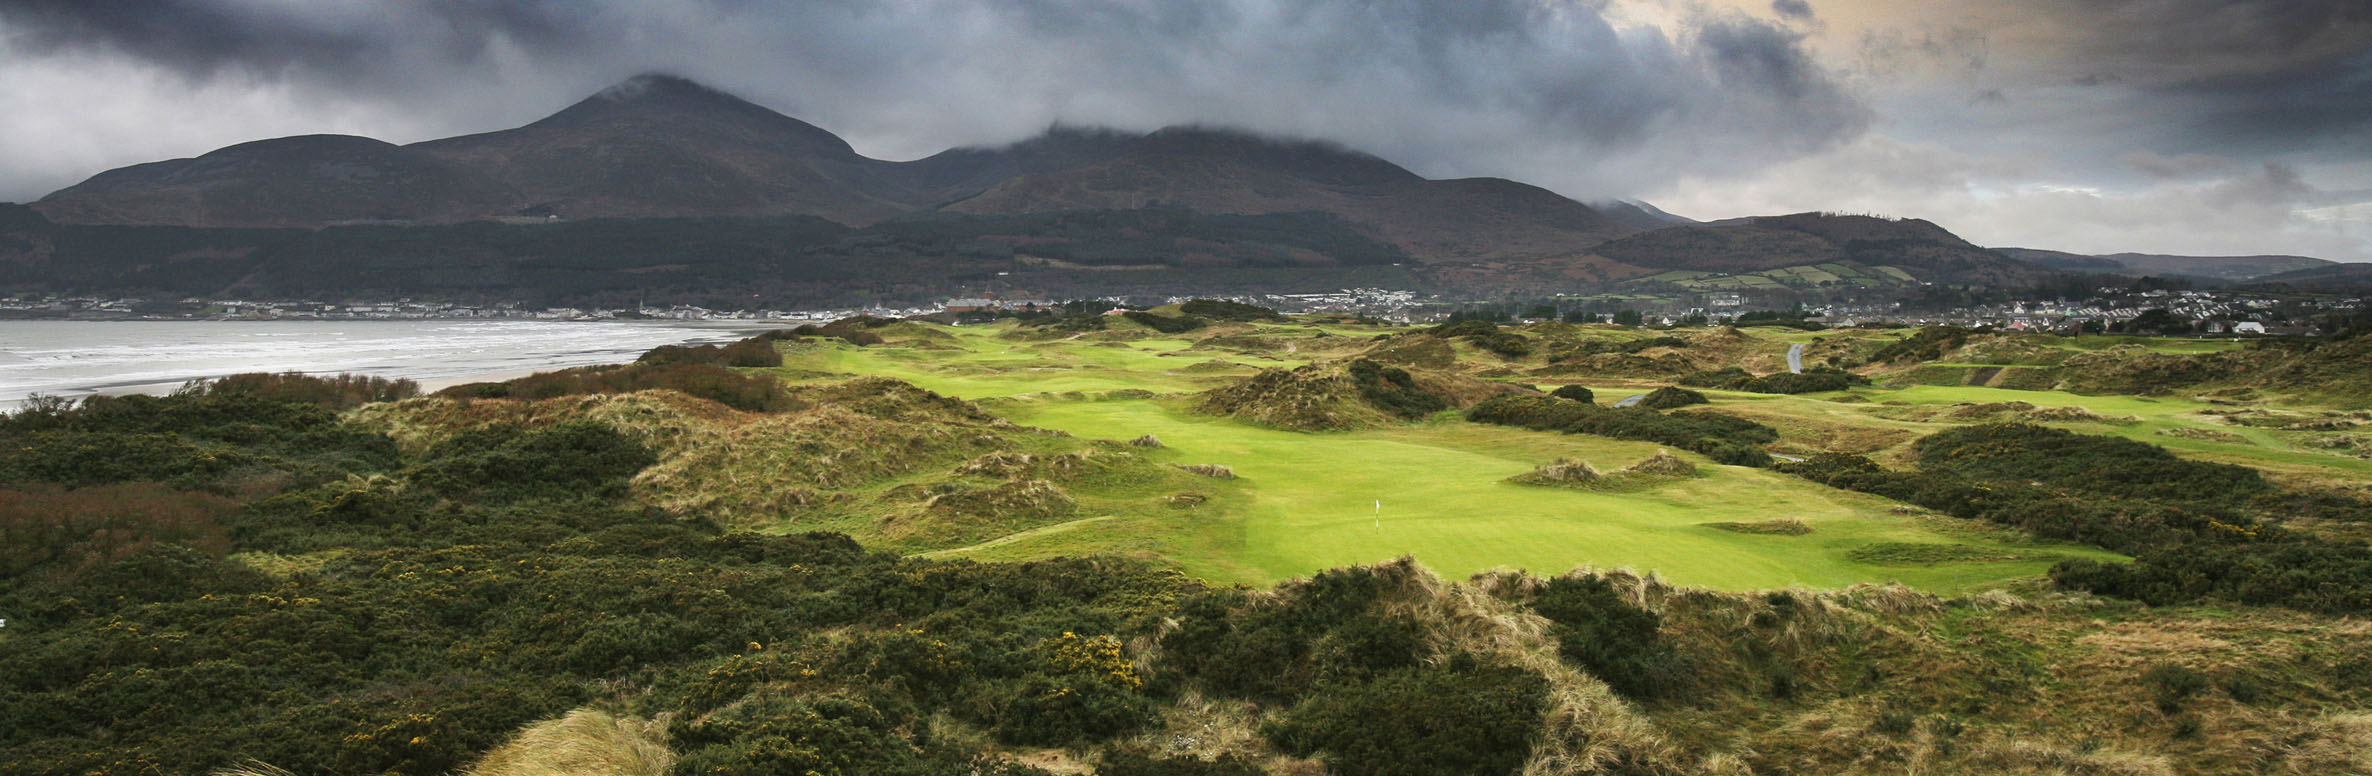 Golf Course Image - Royal County Down Golf Club Annesley No. 4